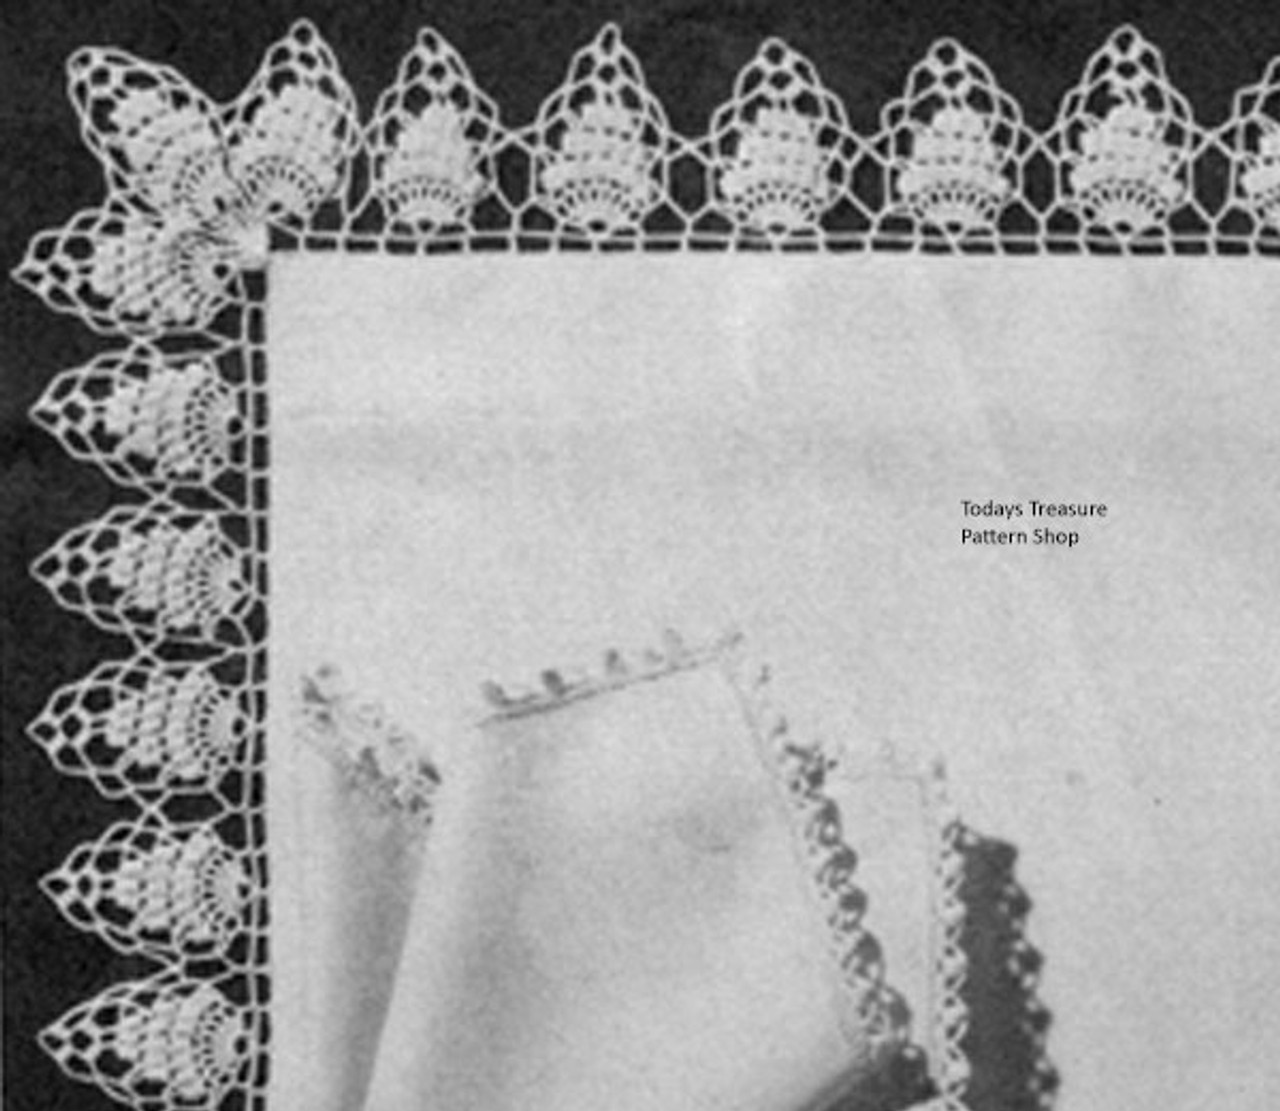 Vintage Crocheted Edging pattern in Pineapple Stitch